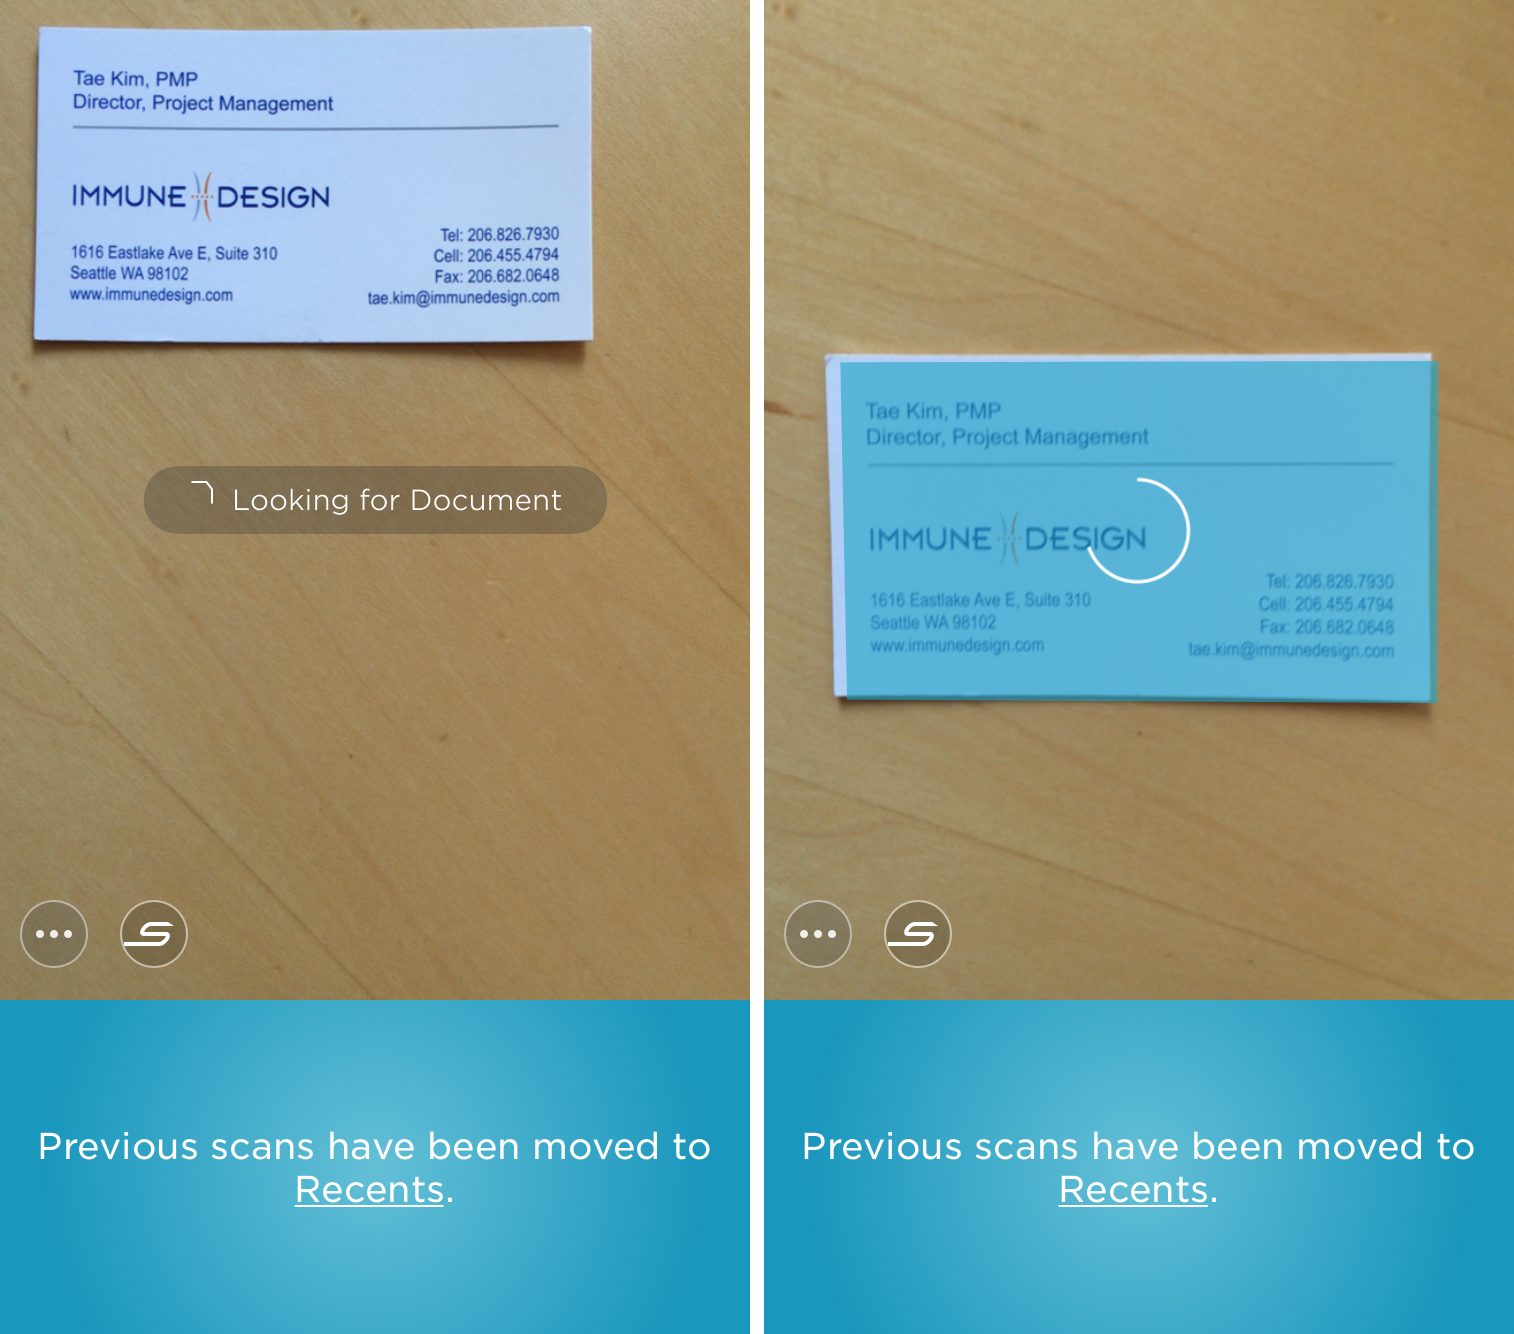 How To Quickly Scan A Business Card And Save Contact Info